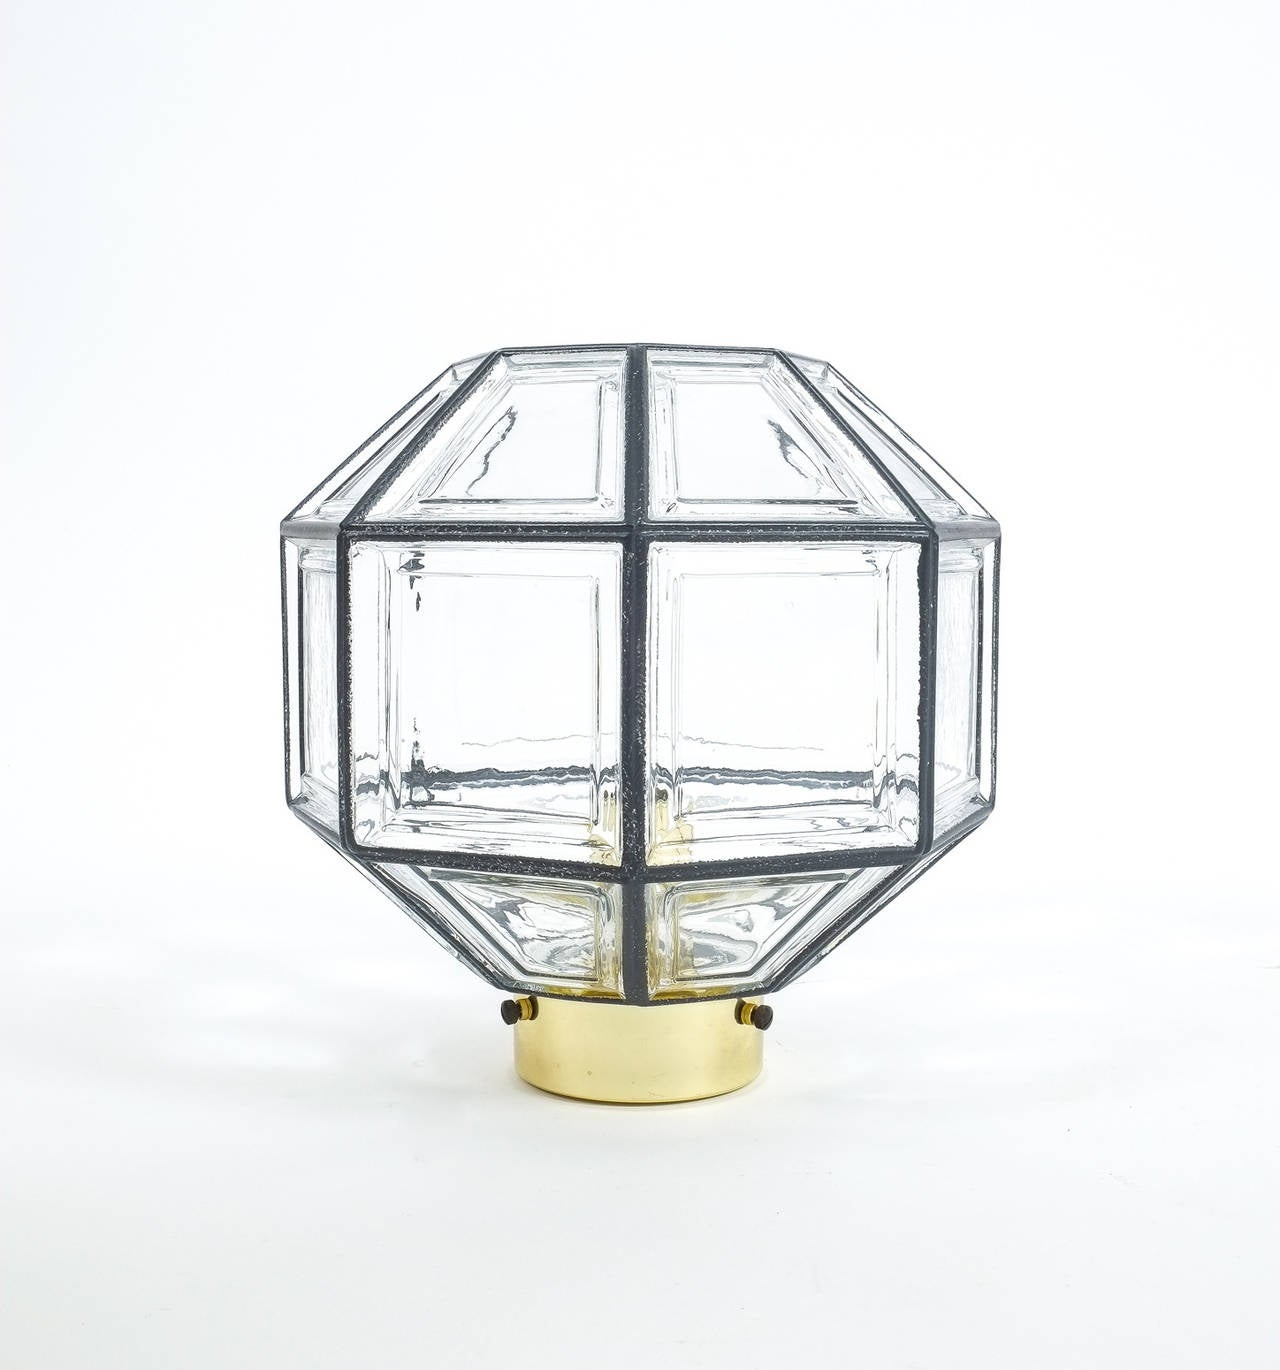 German Set of Three Clear Glass Lantern Flush Mounts Lamps by Limburg, 1960 For Sale